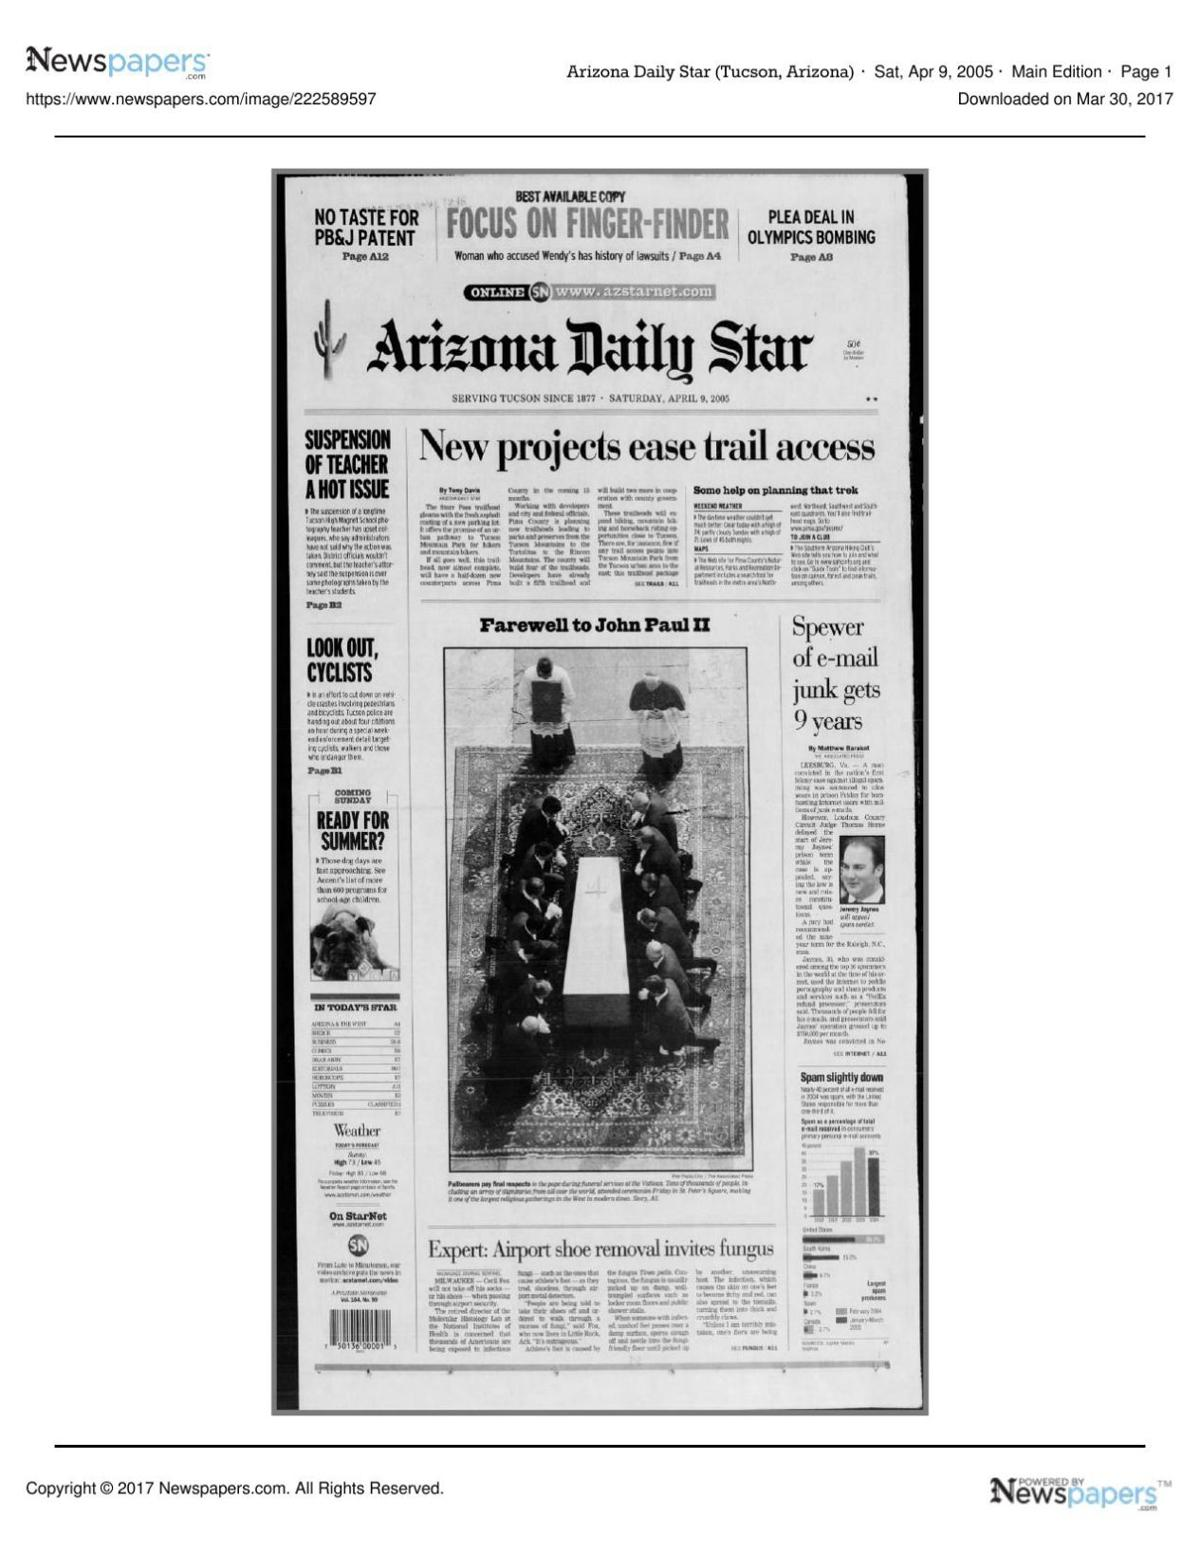 Arizona Daily Star front page April 9, 2005 pdf | | tucson com